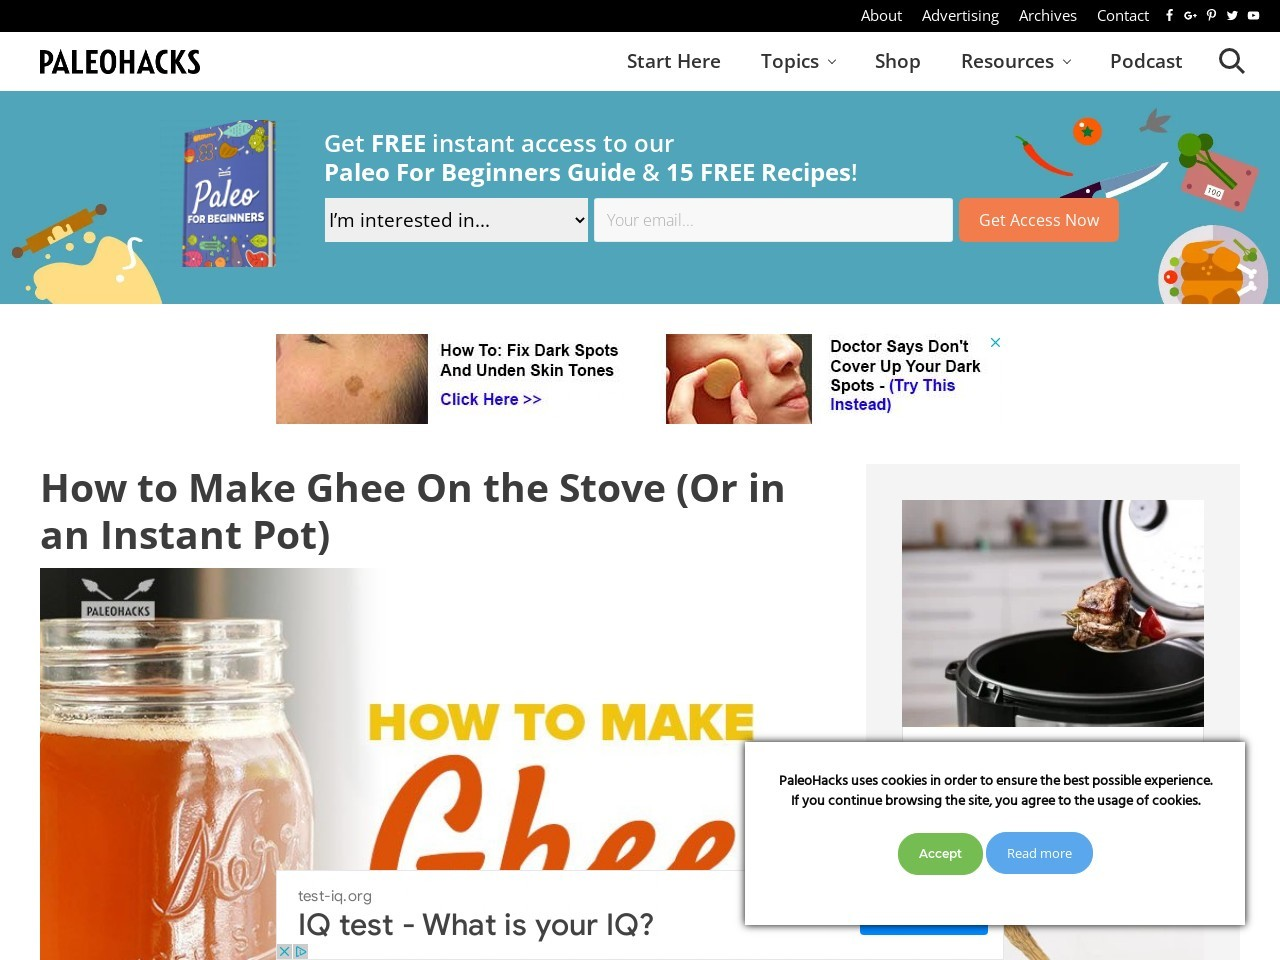 How to Make Ghee On the Stove (Or in an Instant Pot)